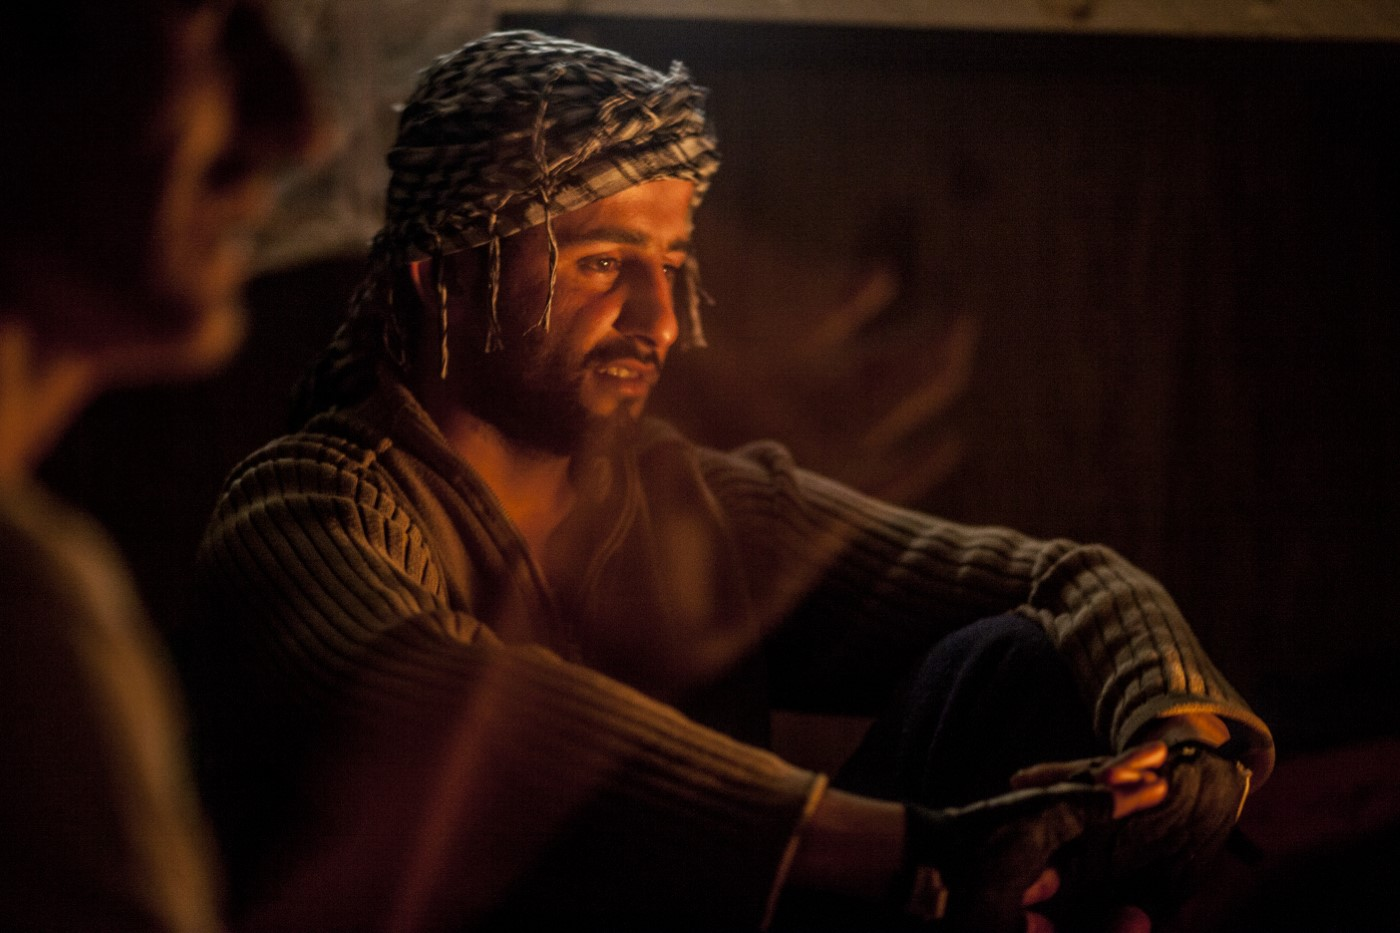 Haval, also an Iraqi Kurdish refugee, listens to the singing of his partner Baxtyar one night in the wooden hut where they sleep.